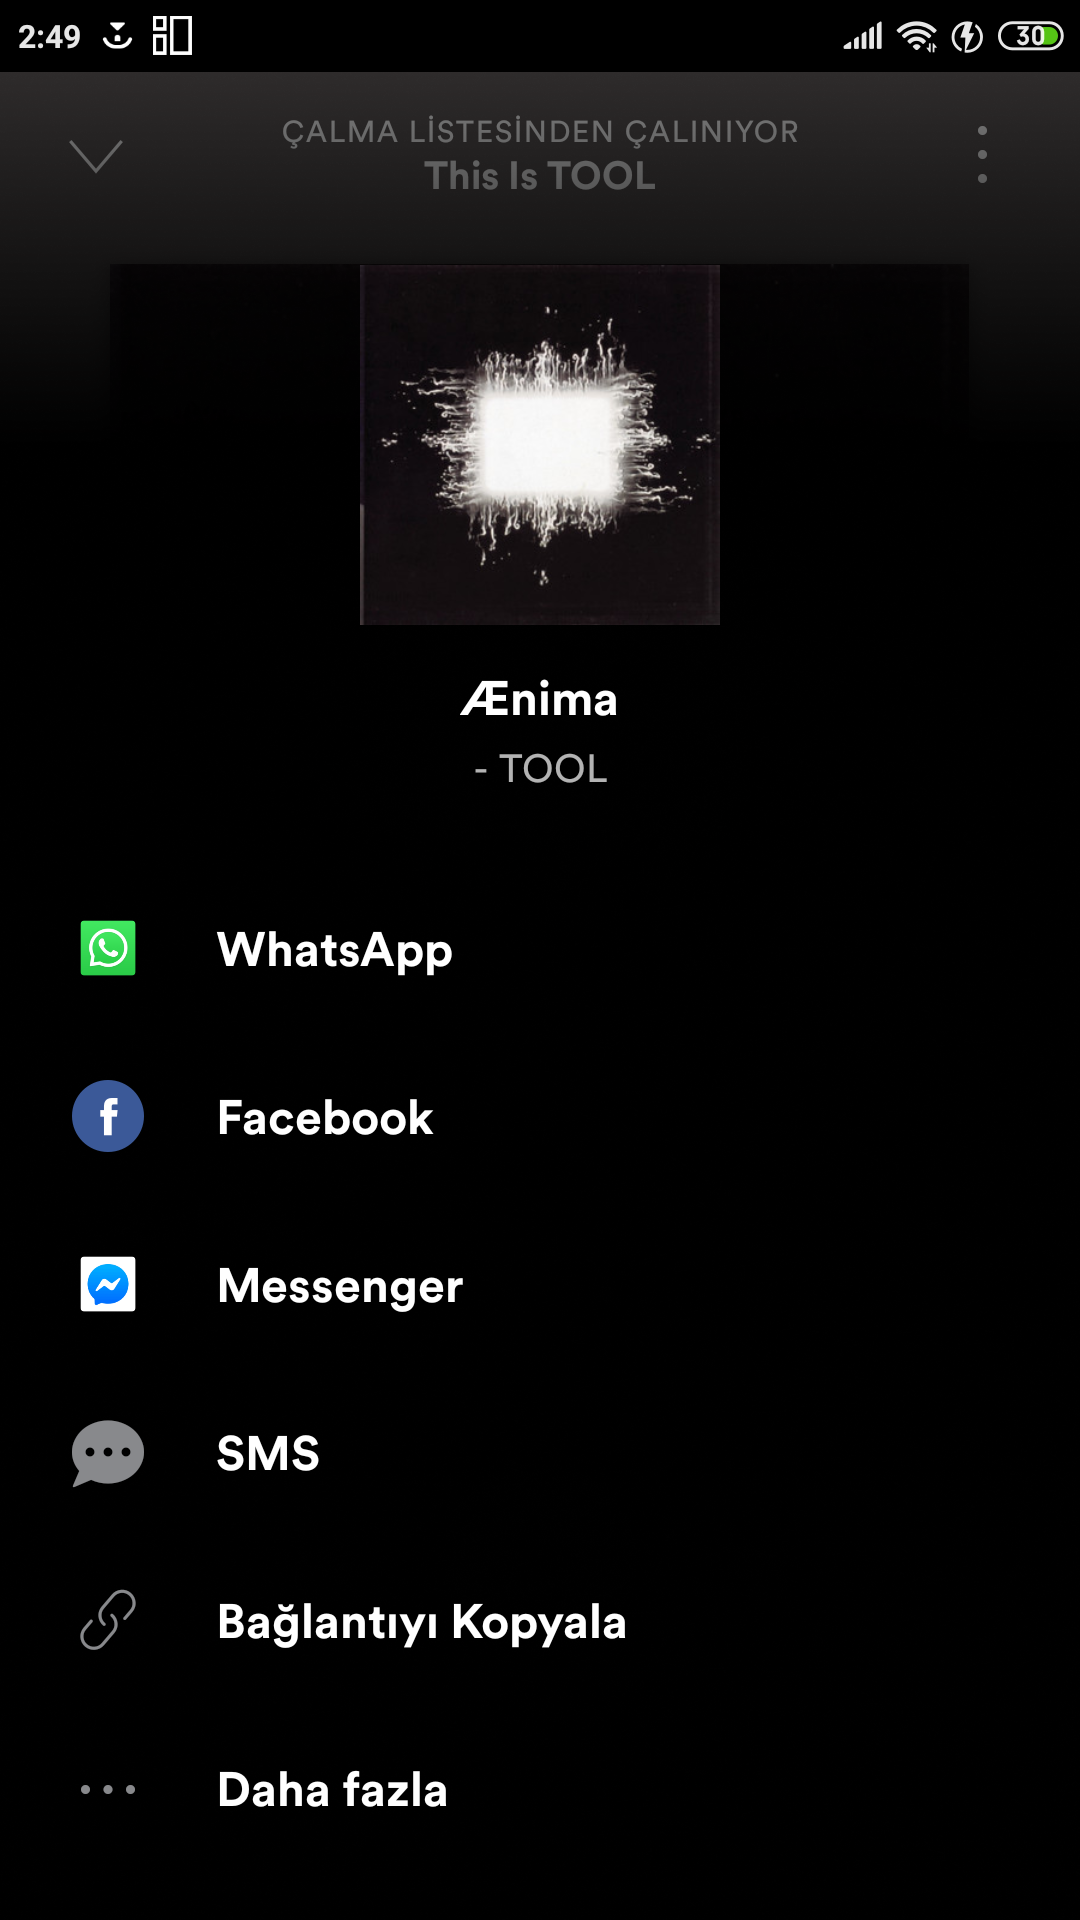 Screenshot_2019-08-03-02-49-40-652_com.spotify.music.png